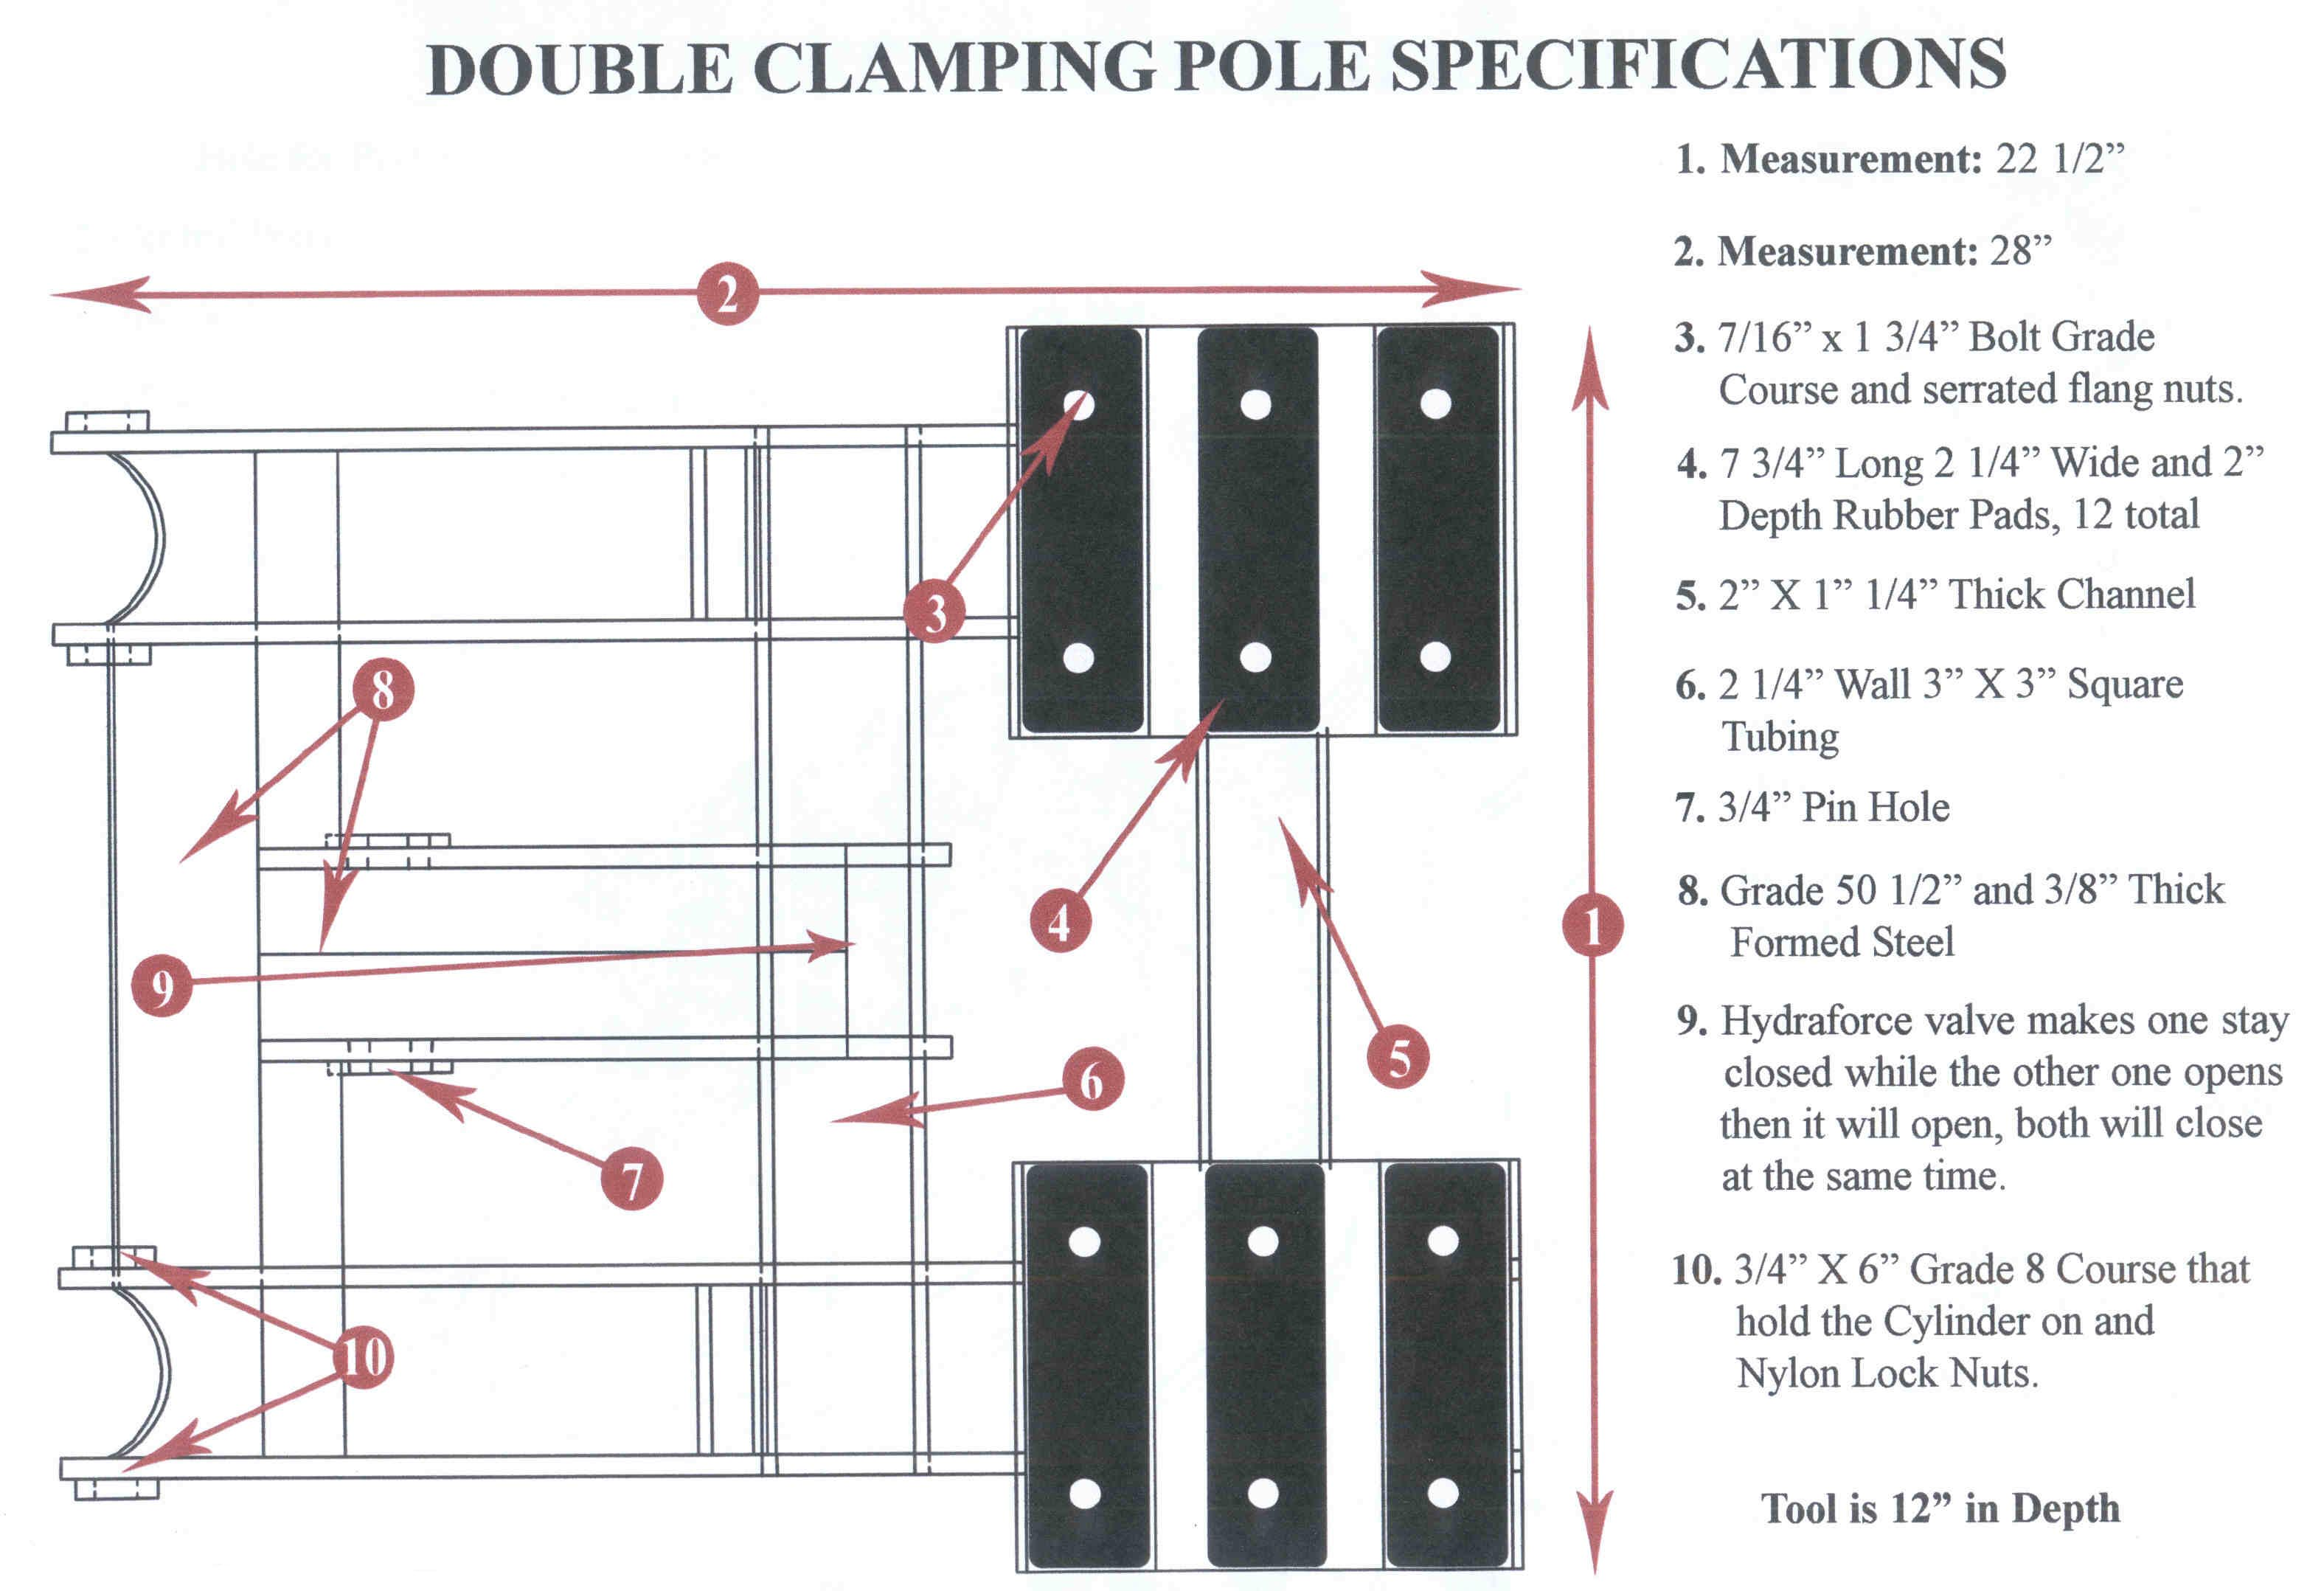 Specifications On Double Clamping Pole